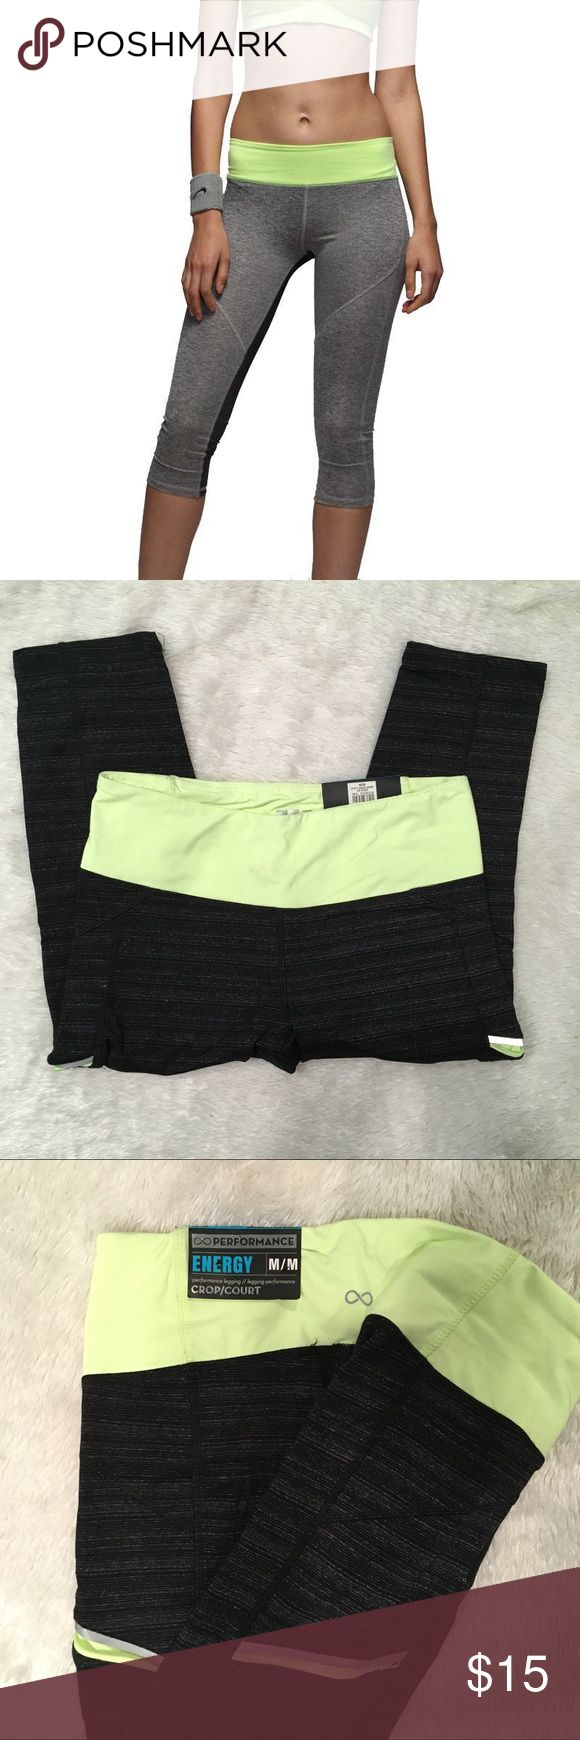 NWT Energy Crop Performance Leggings Size Medium Brand new with tags! Very cute workout leggings. (First picture is closest photo I found online, actual leggings are pictured) MSRP is $24.99 Size Medium. Length measures 27 inches long. Pure Energy Pants Leggings